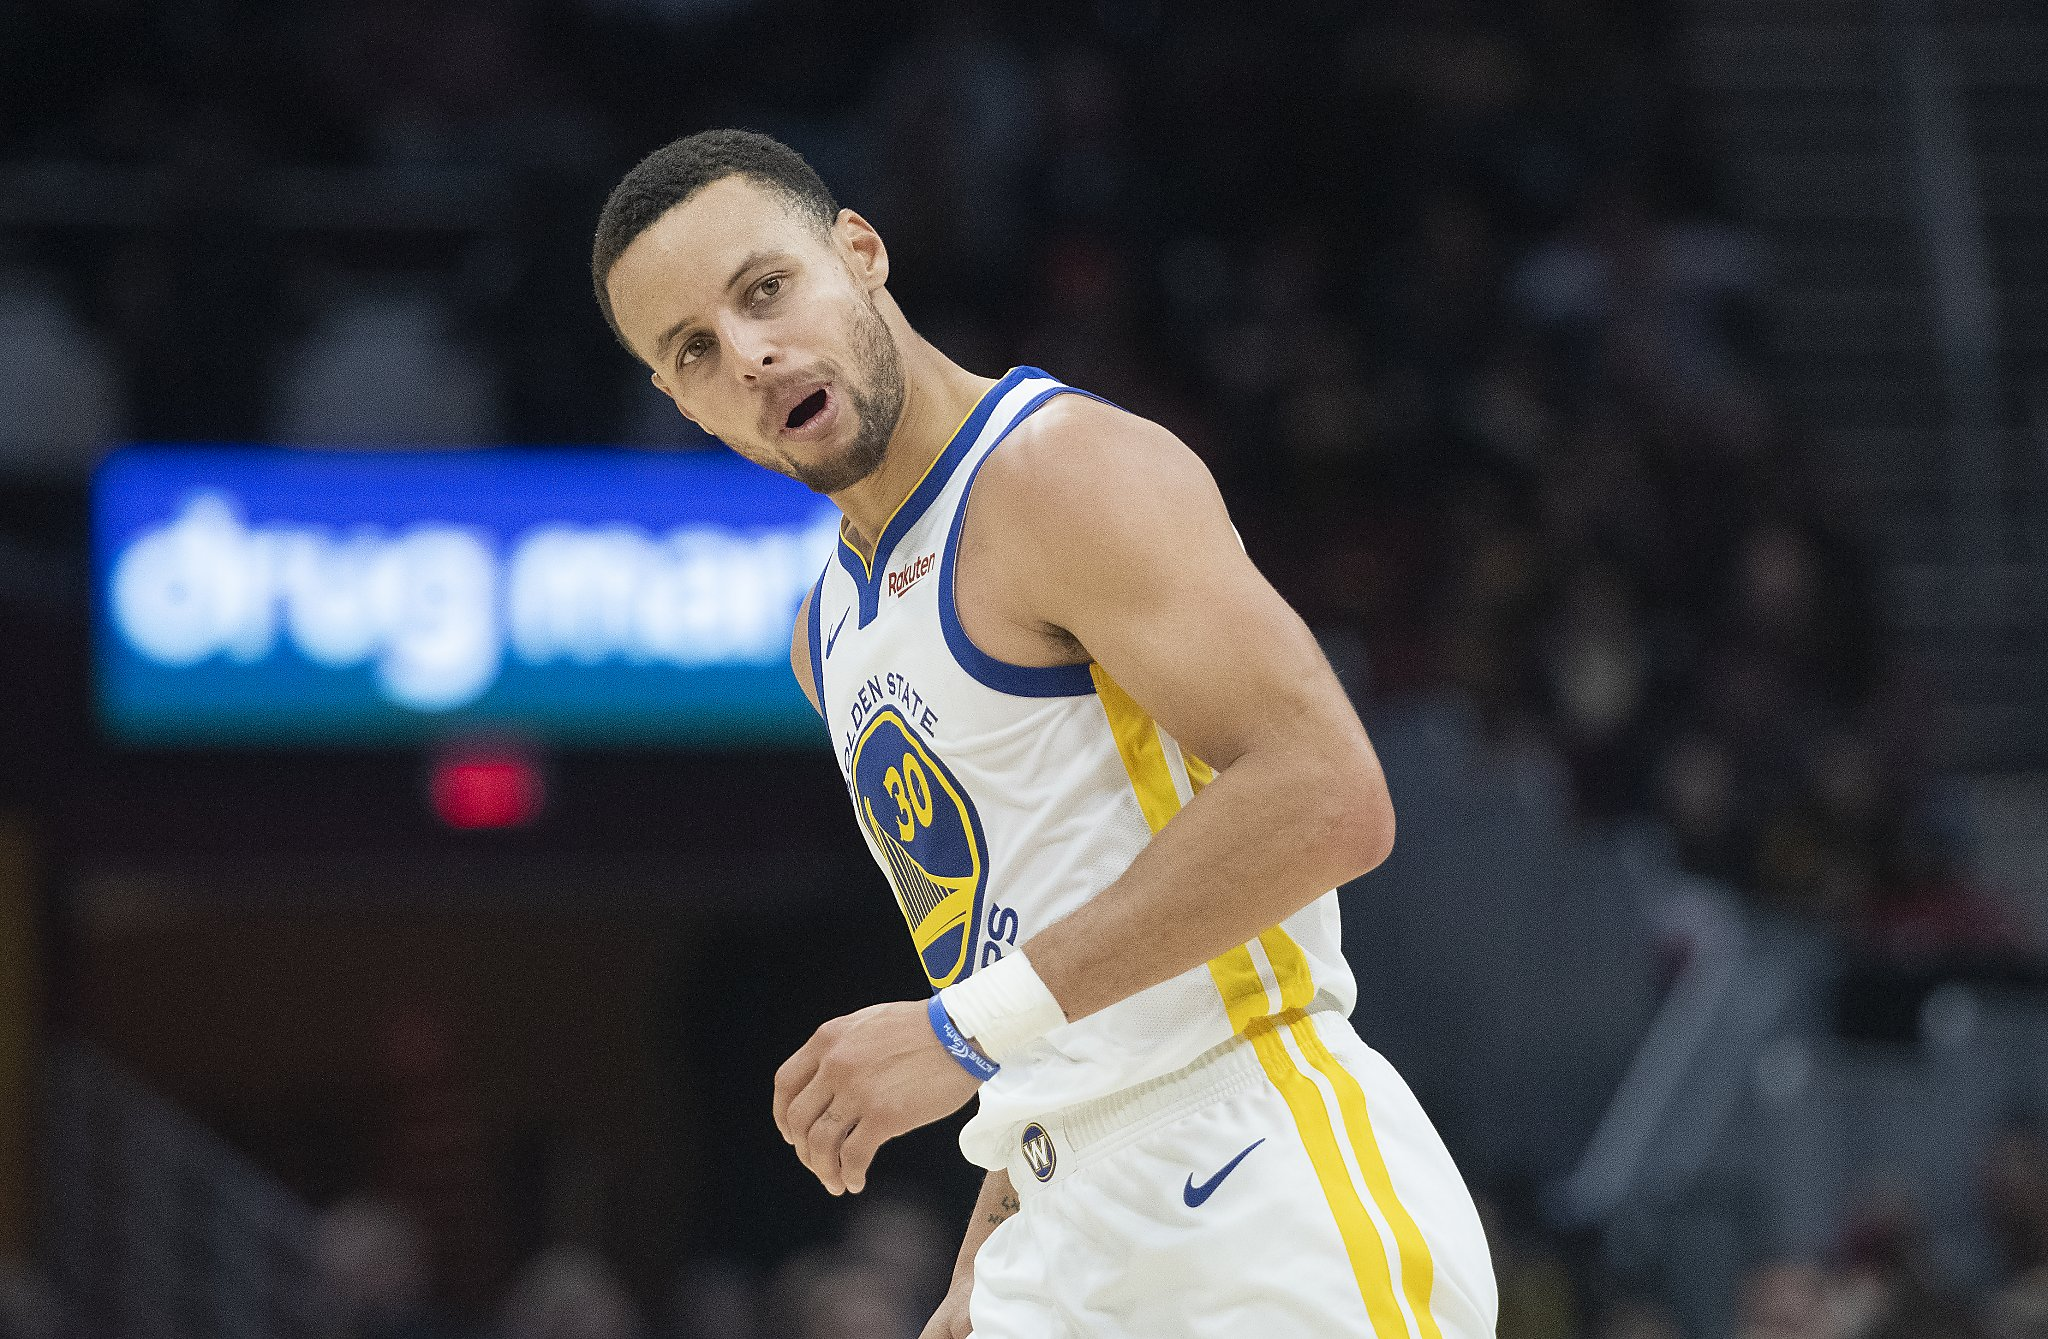 Warriors  Stephen Curry says he was joking about moon landing doubts -  SFGate c2f121b0a